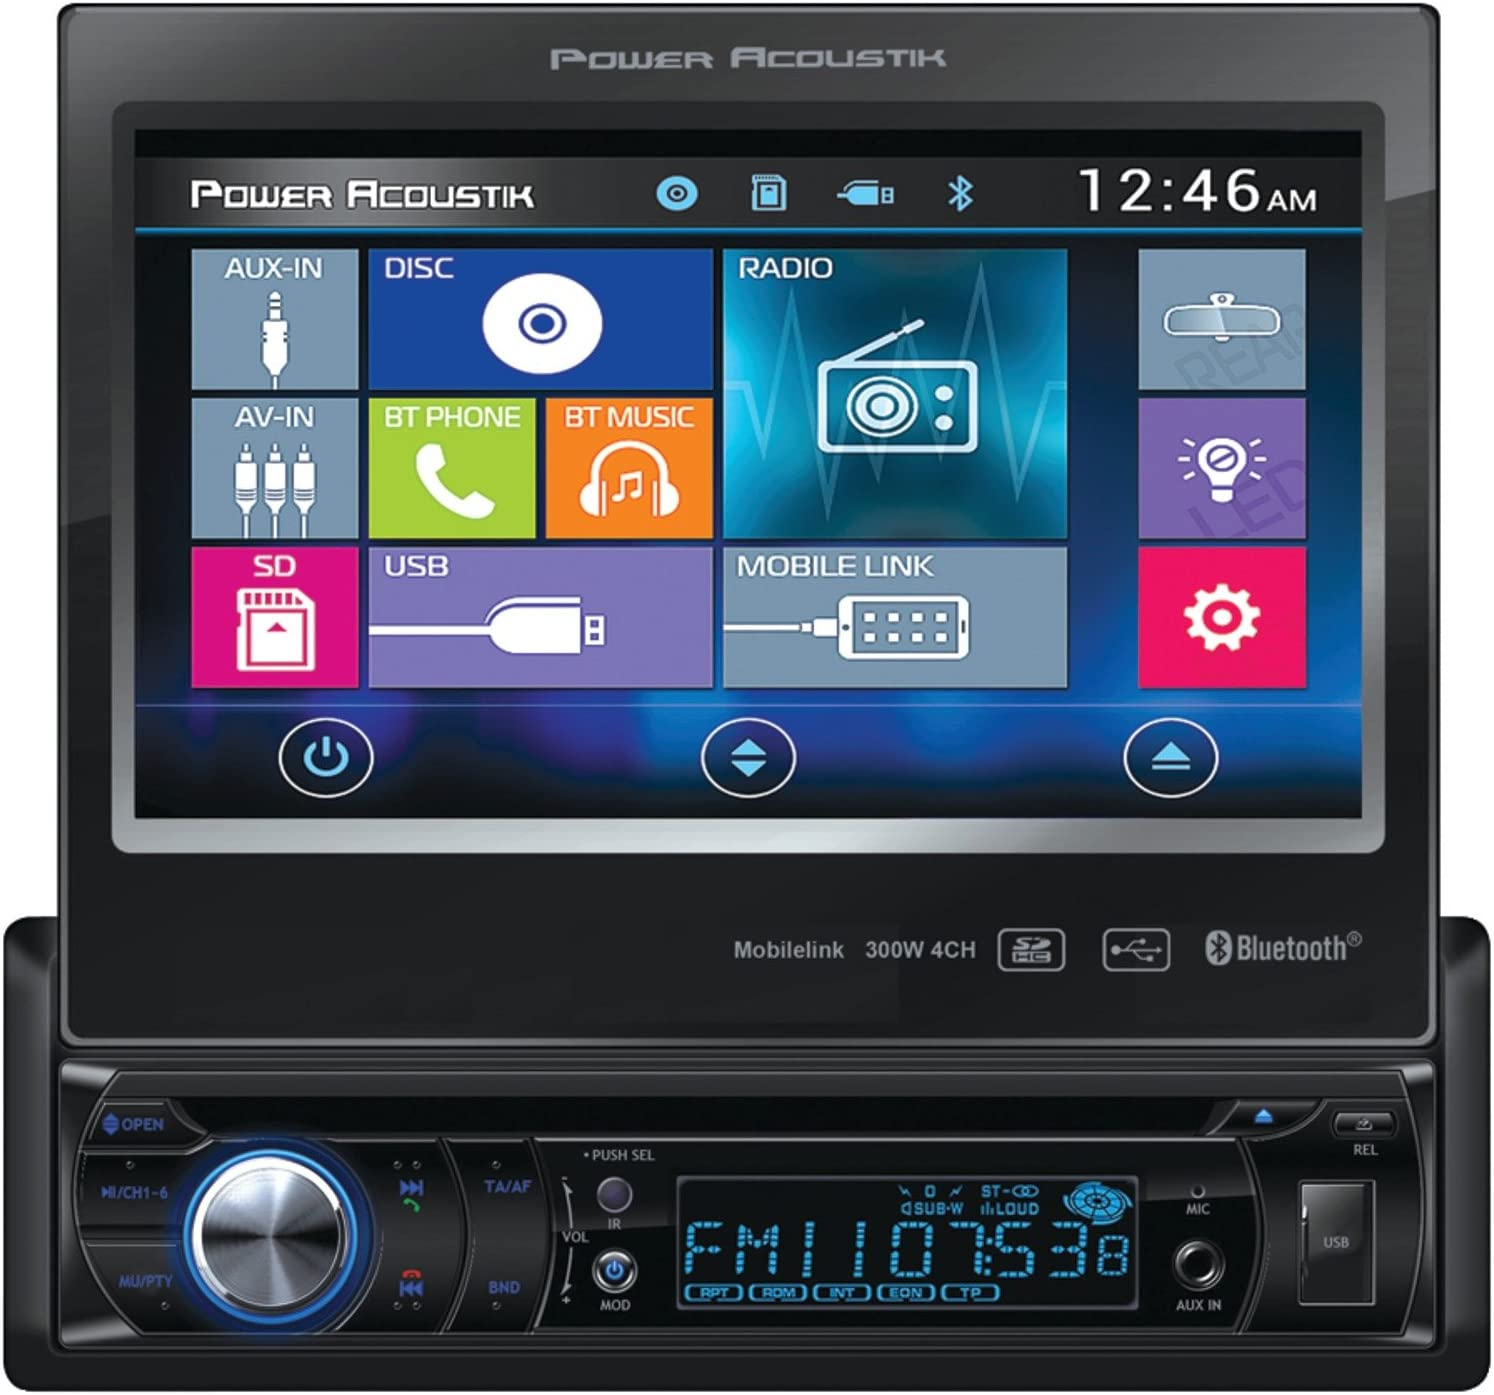 "Power Acoustik 7"" Single-din in-Dash Motorized LCD Touchscreen DVD Receiver (PD-724HB)"